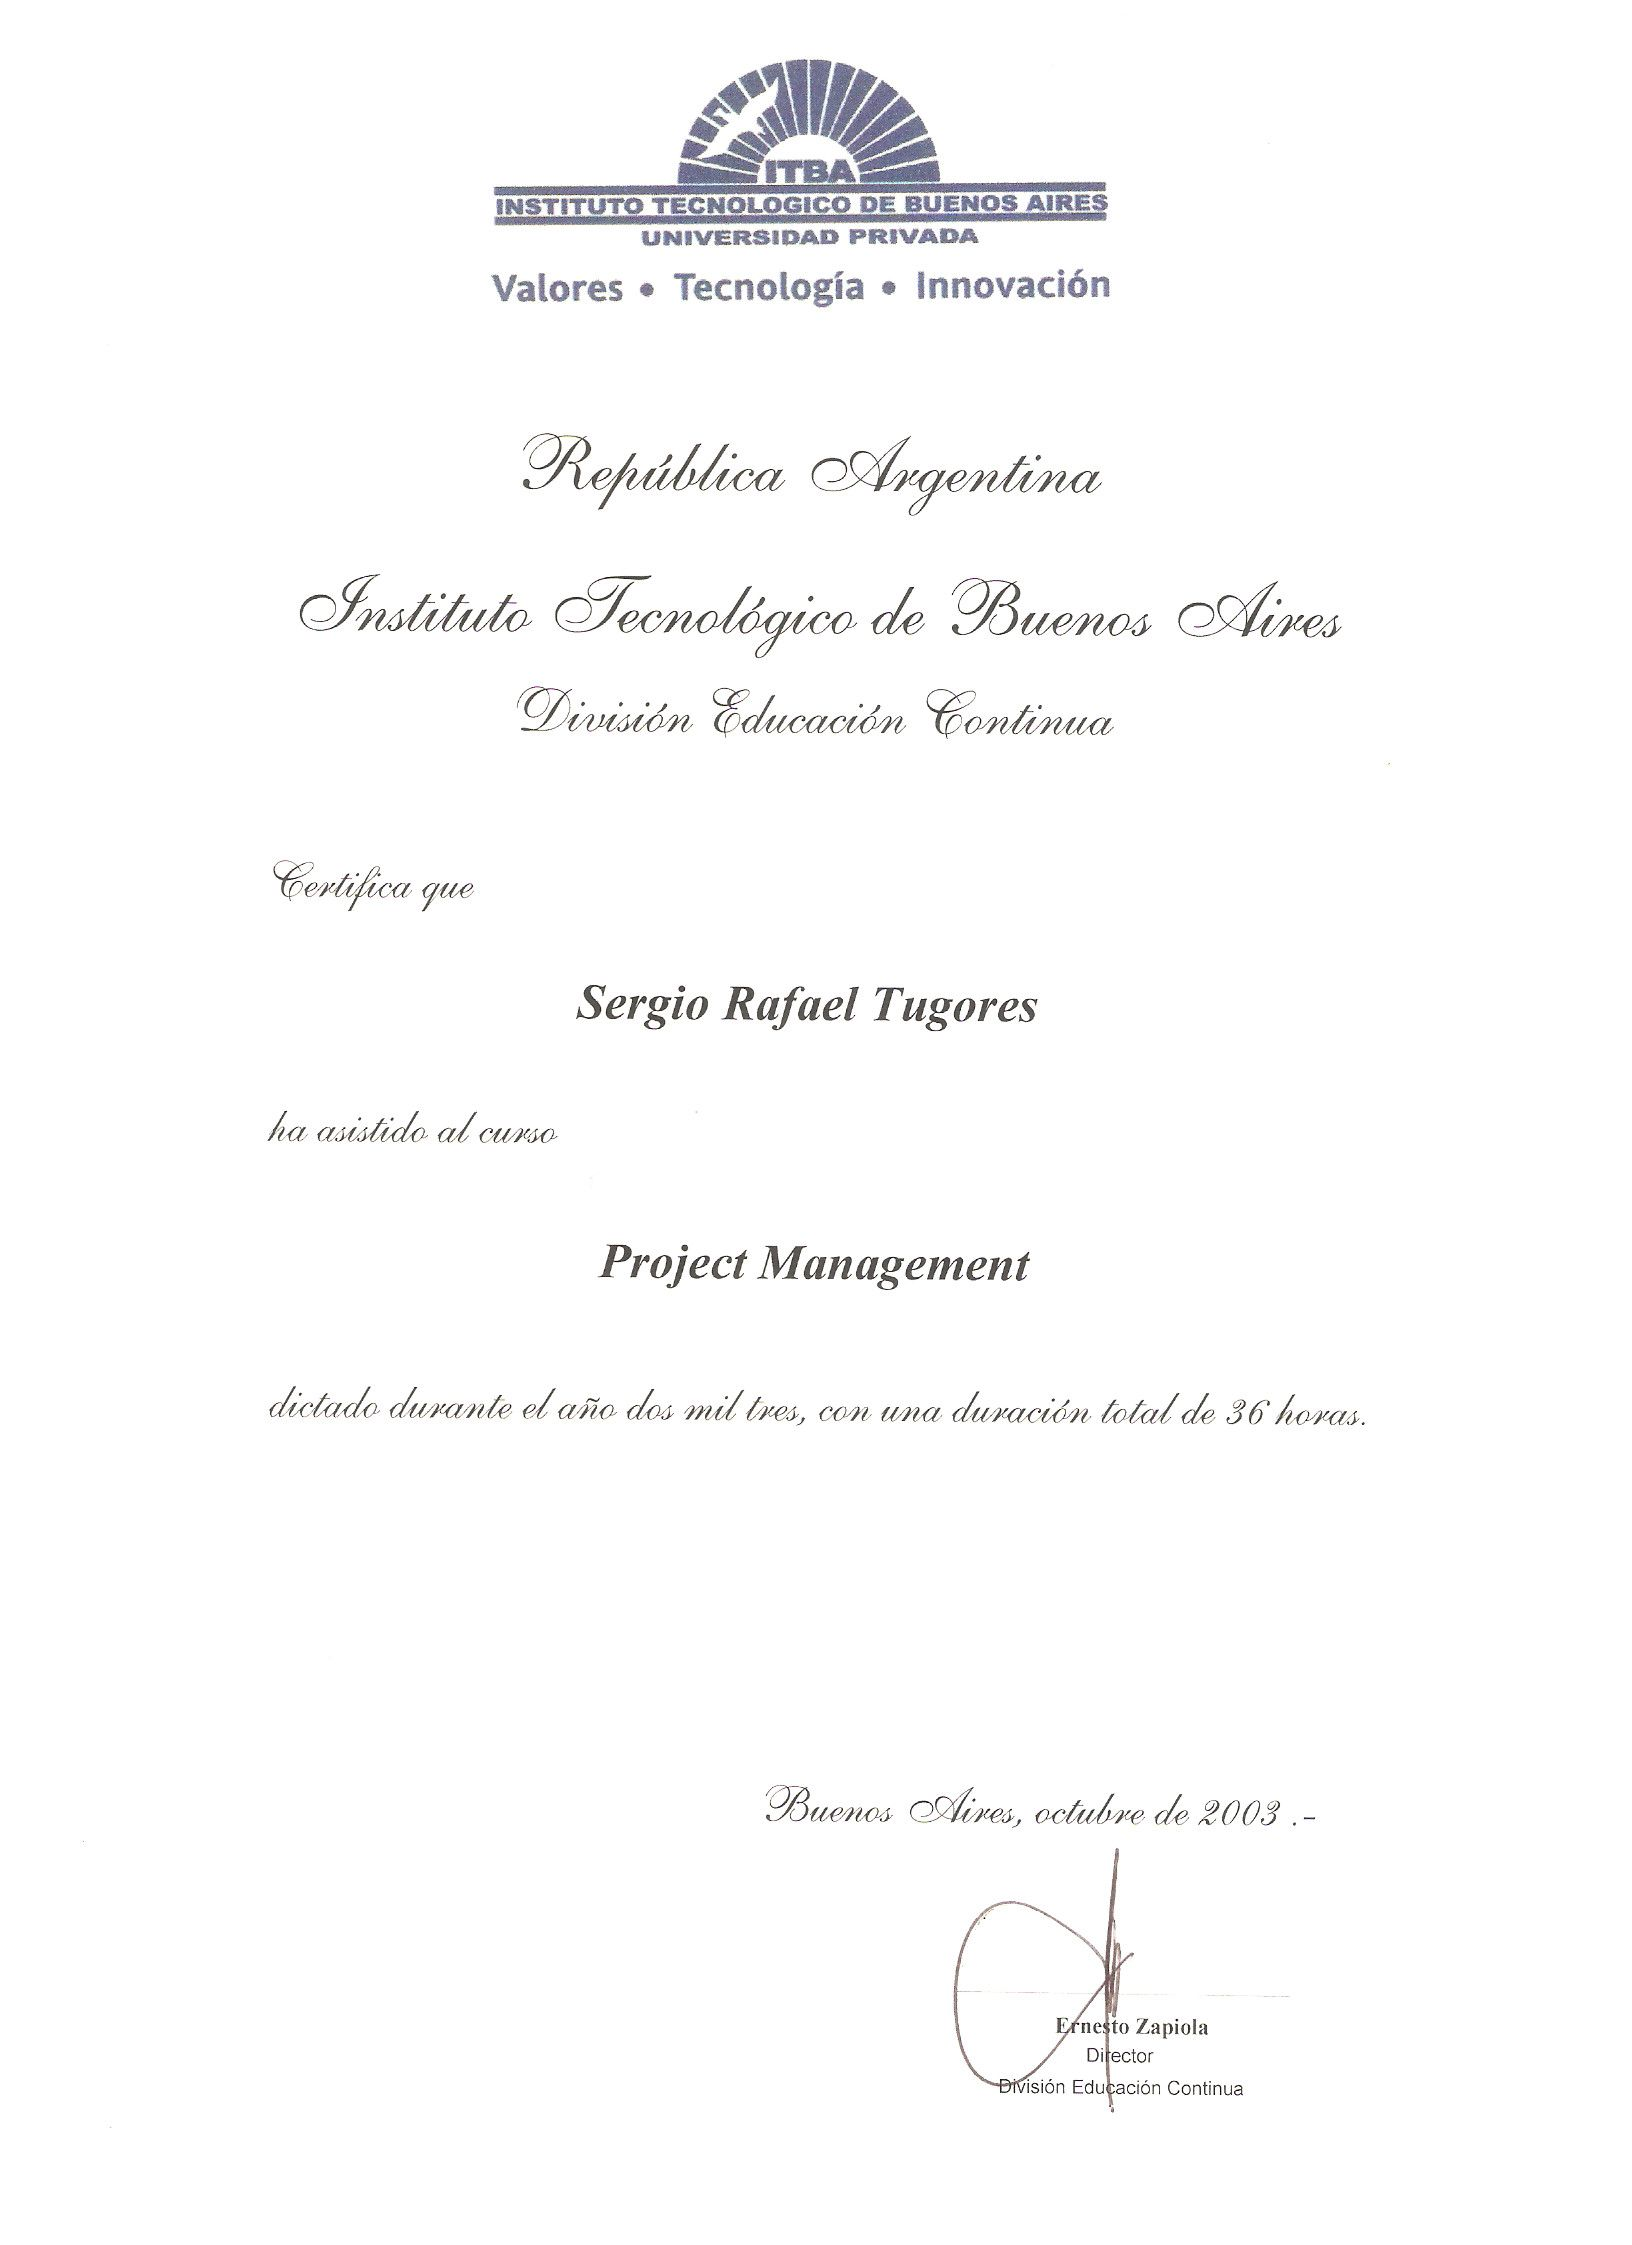 2003 - Proyect Management - ITBA